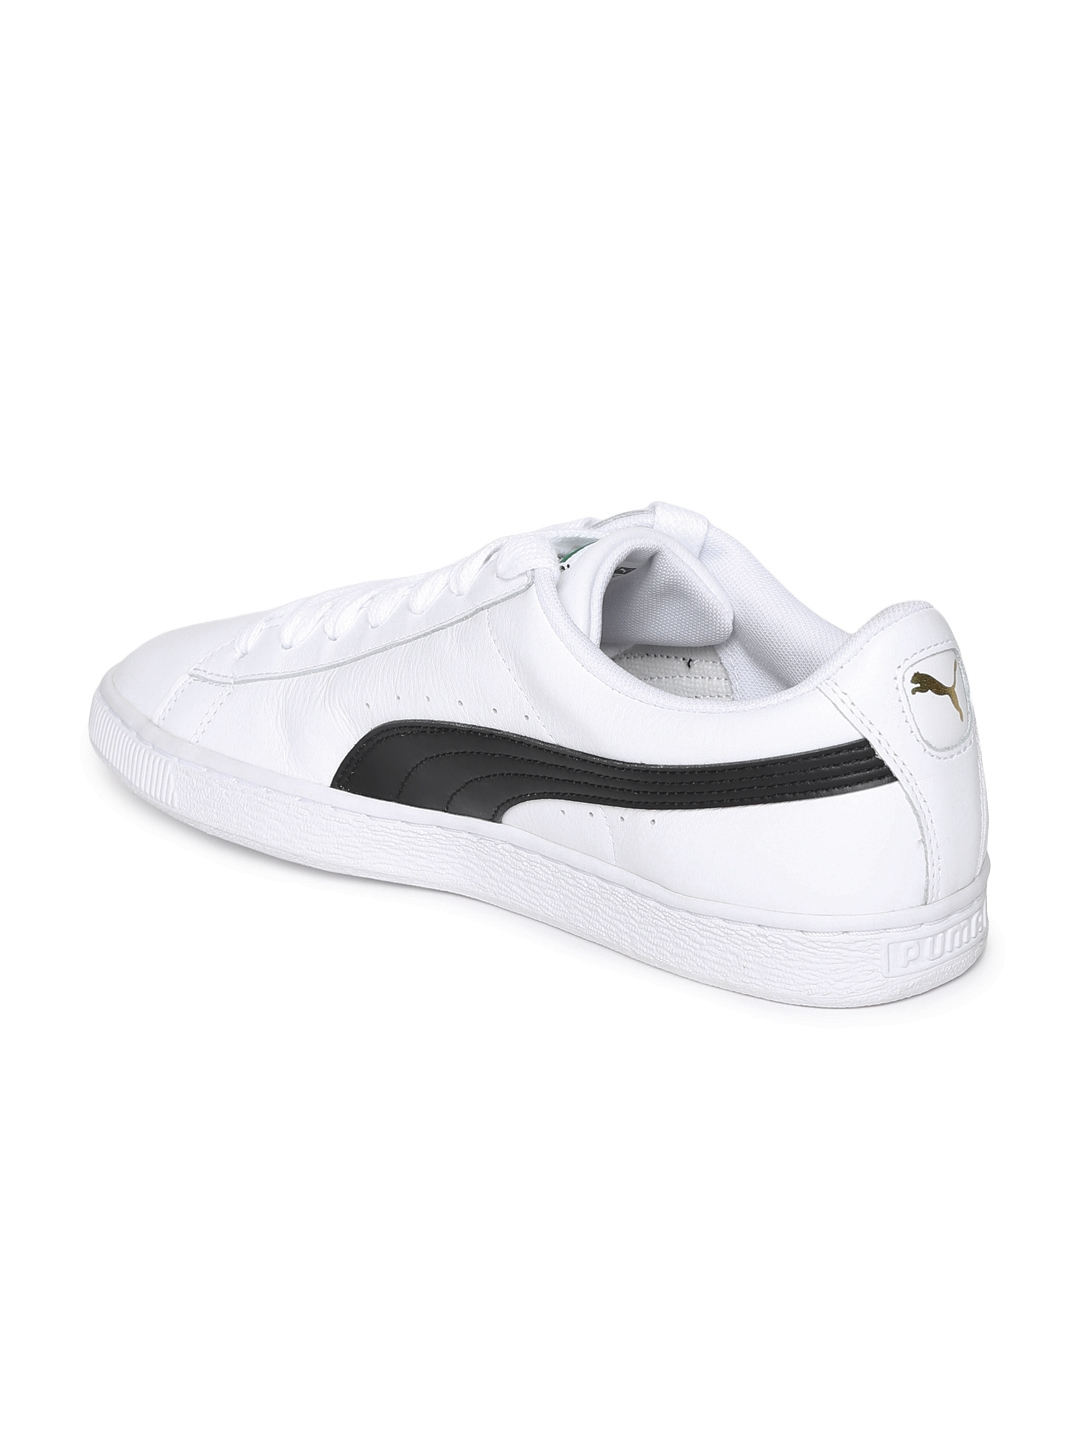 cf7c5046f34 Buy Puma Men White Basket Classic LFS Sneakers - Casual Shoes for ...